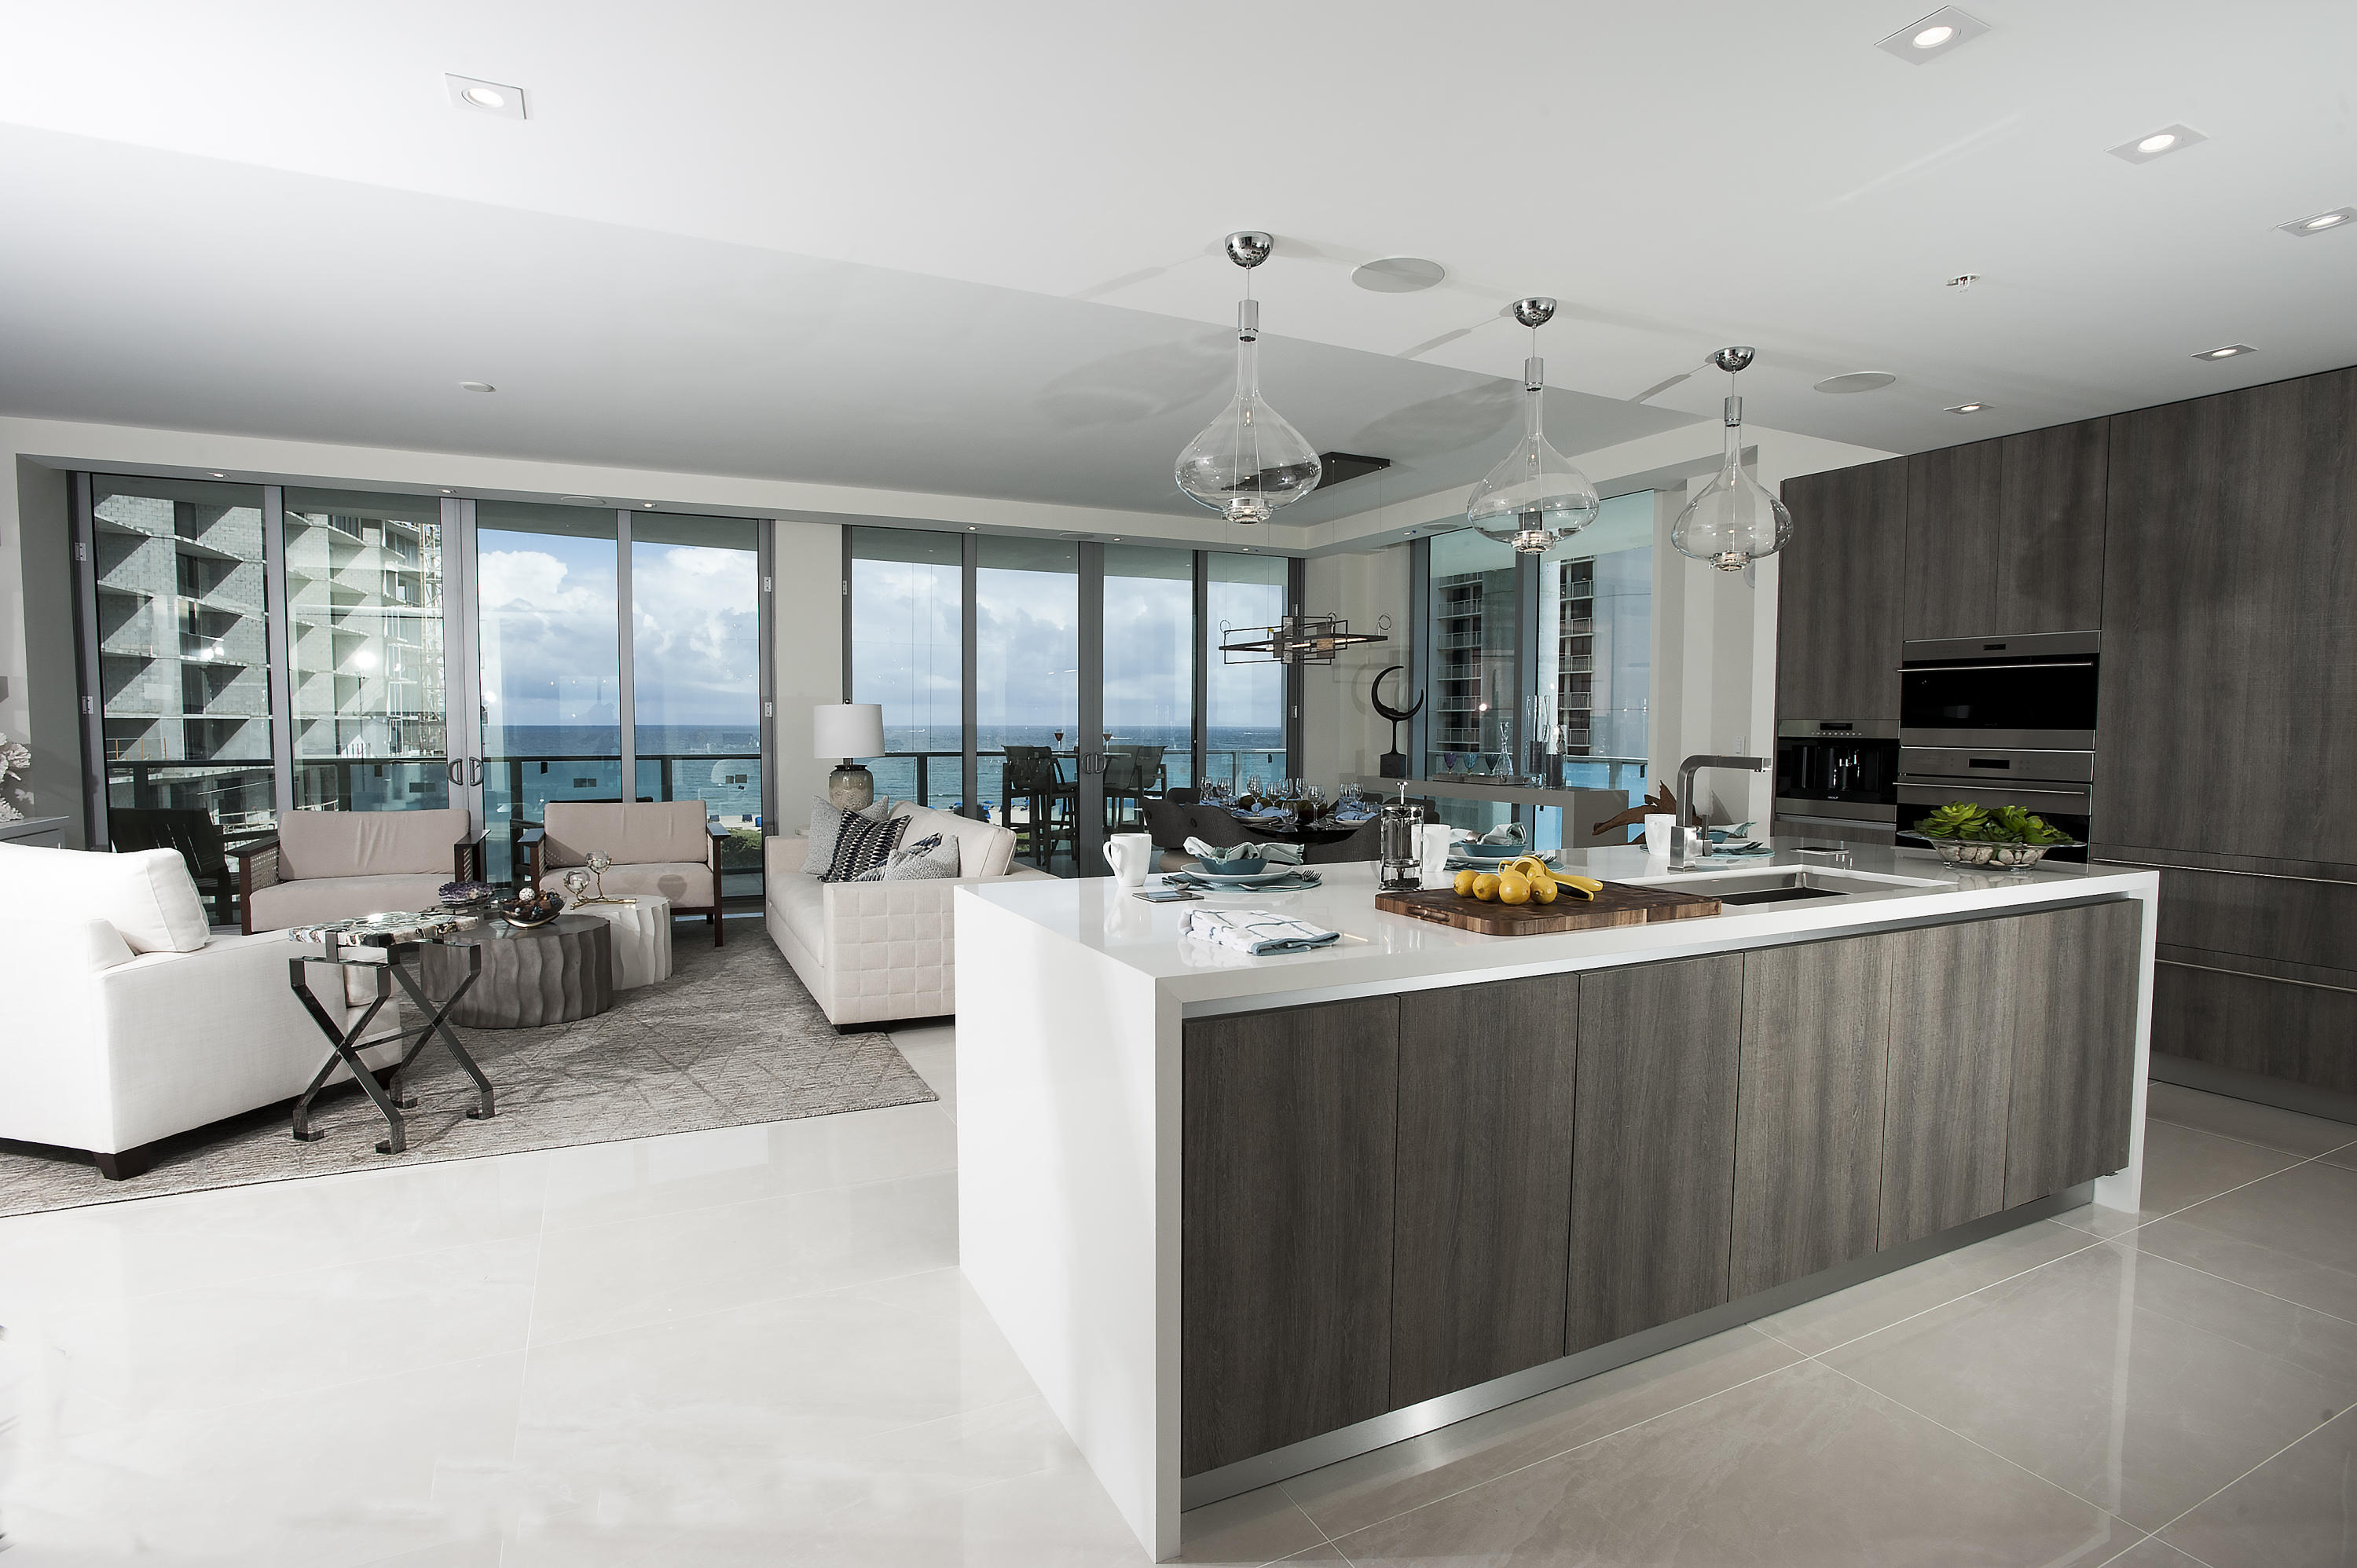 Home for sale in Amrit Singer Island Florida